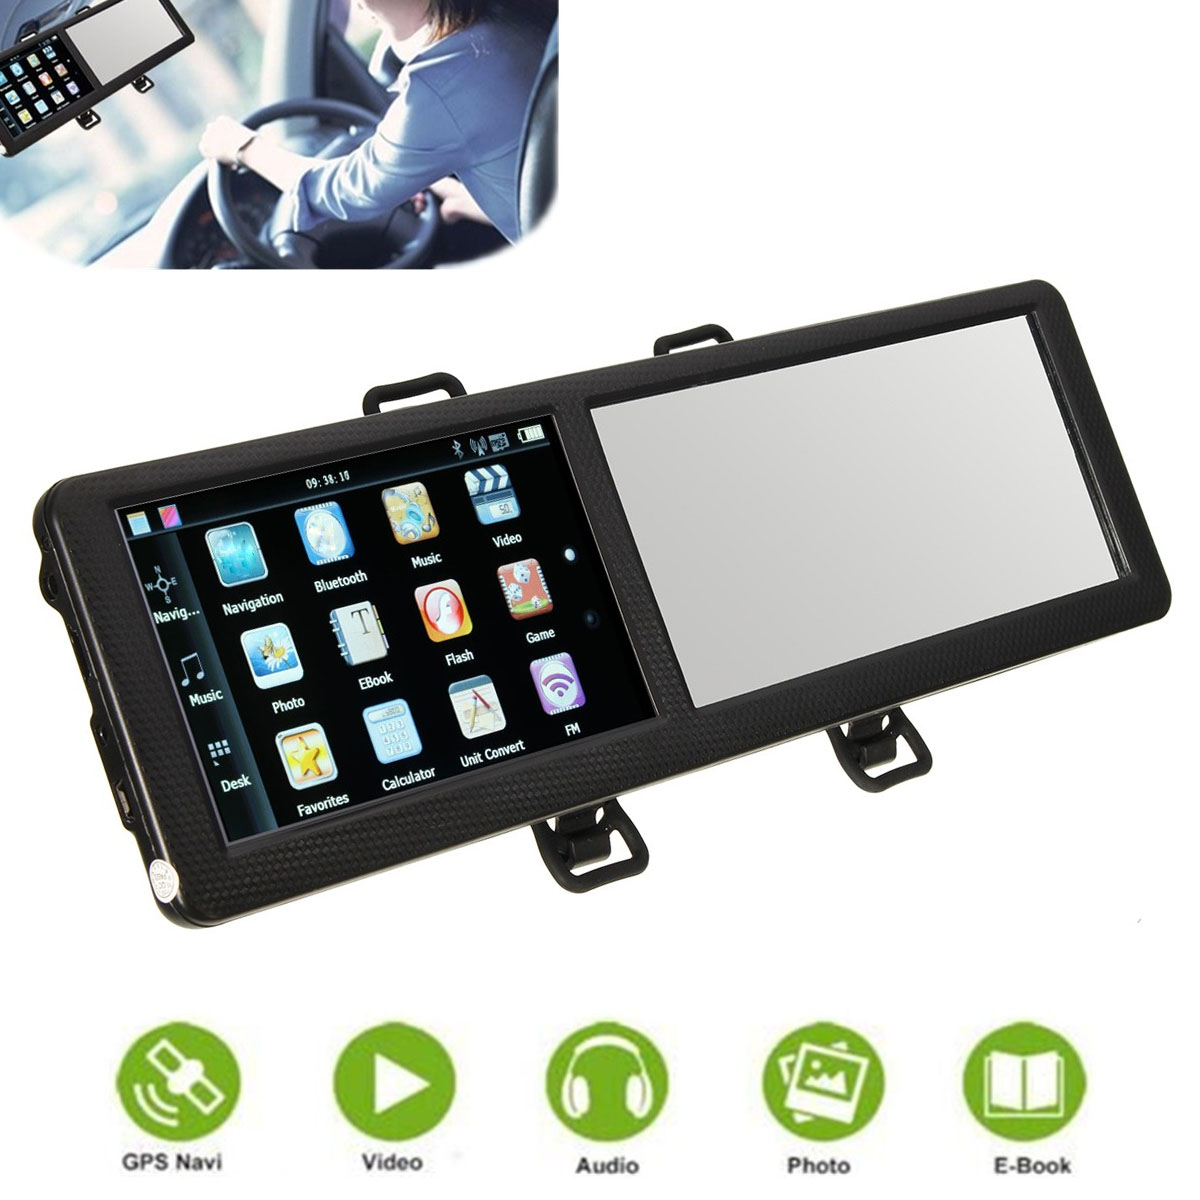 Brand New 8GB 5 inch TFT Touch Screen Bluetooth Car GPS Navigation SAT NAV FM Rearview Mirror Europe/North America Map(China (Mainland))